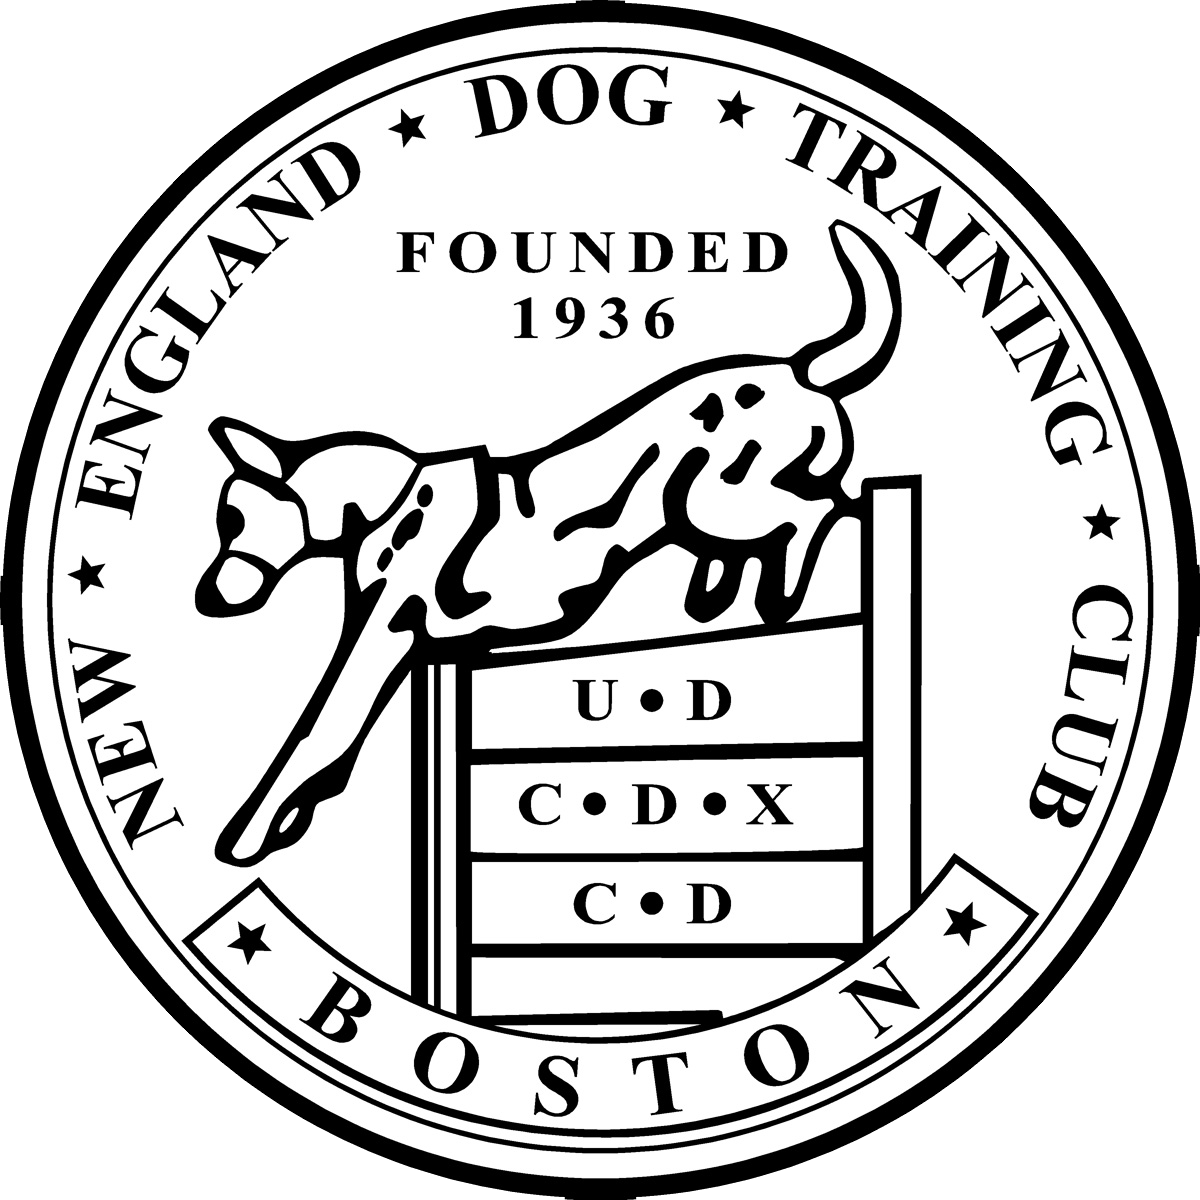 The oldest AKC club in the country -